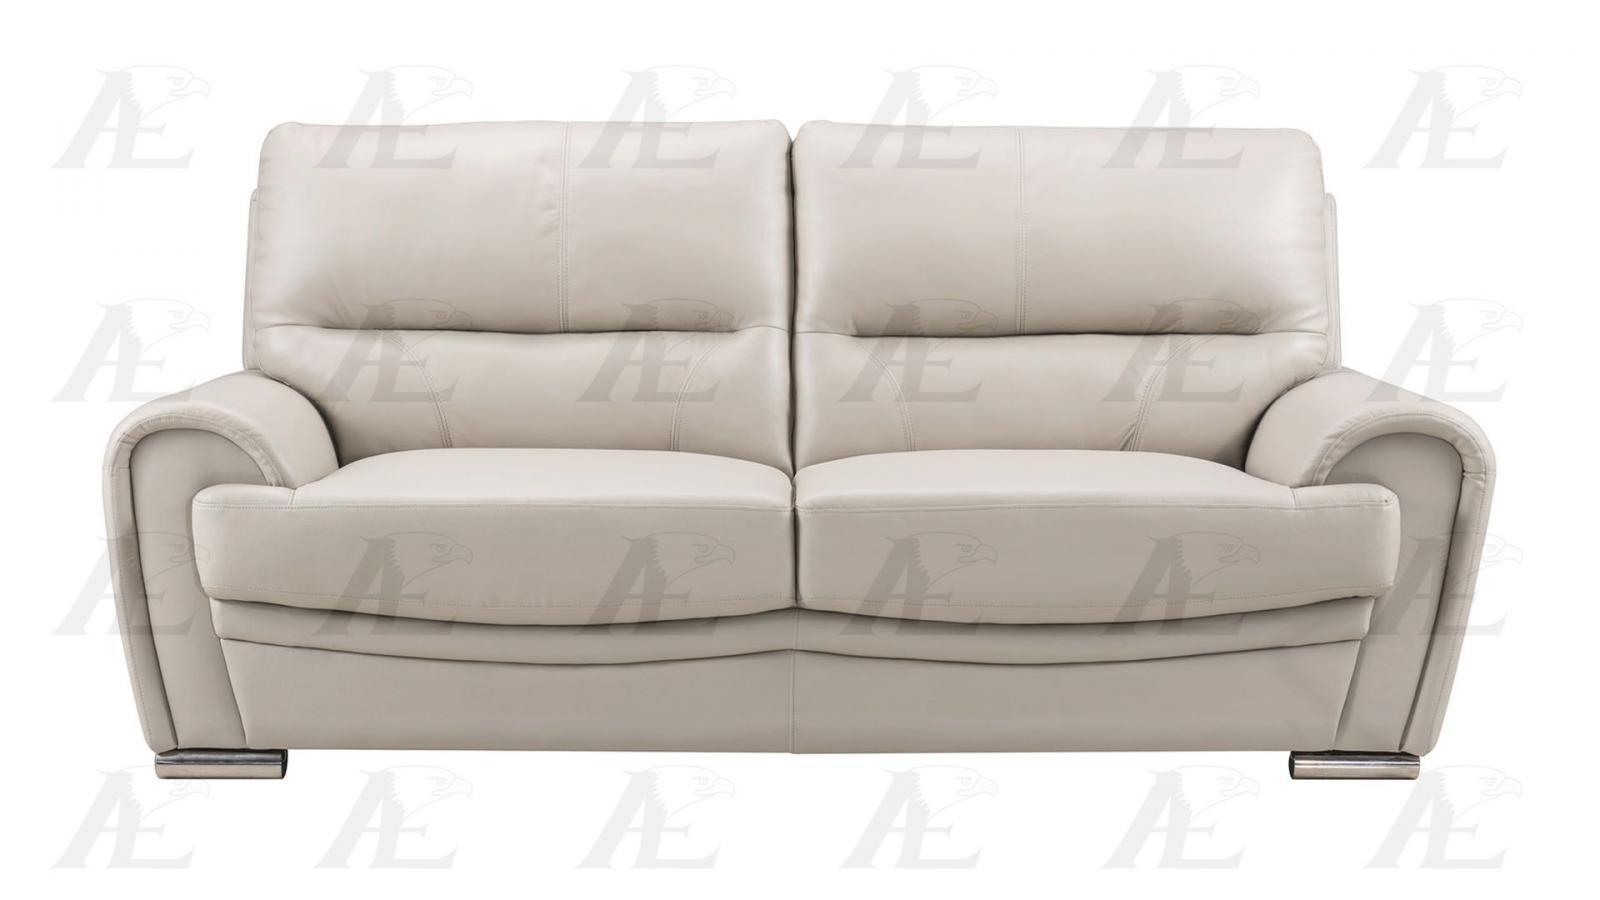 American eagle ek522 lg light gray genuine leather sofa for Light gray leather sofa